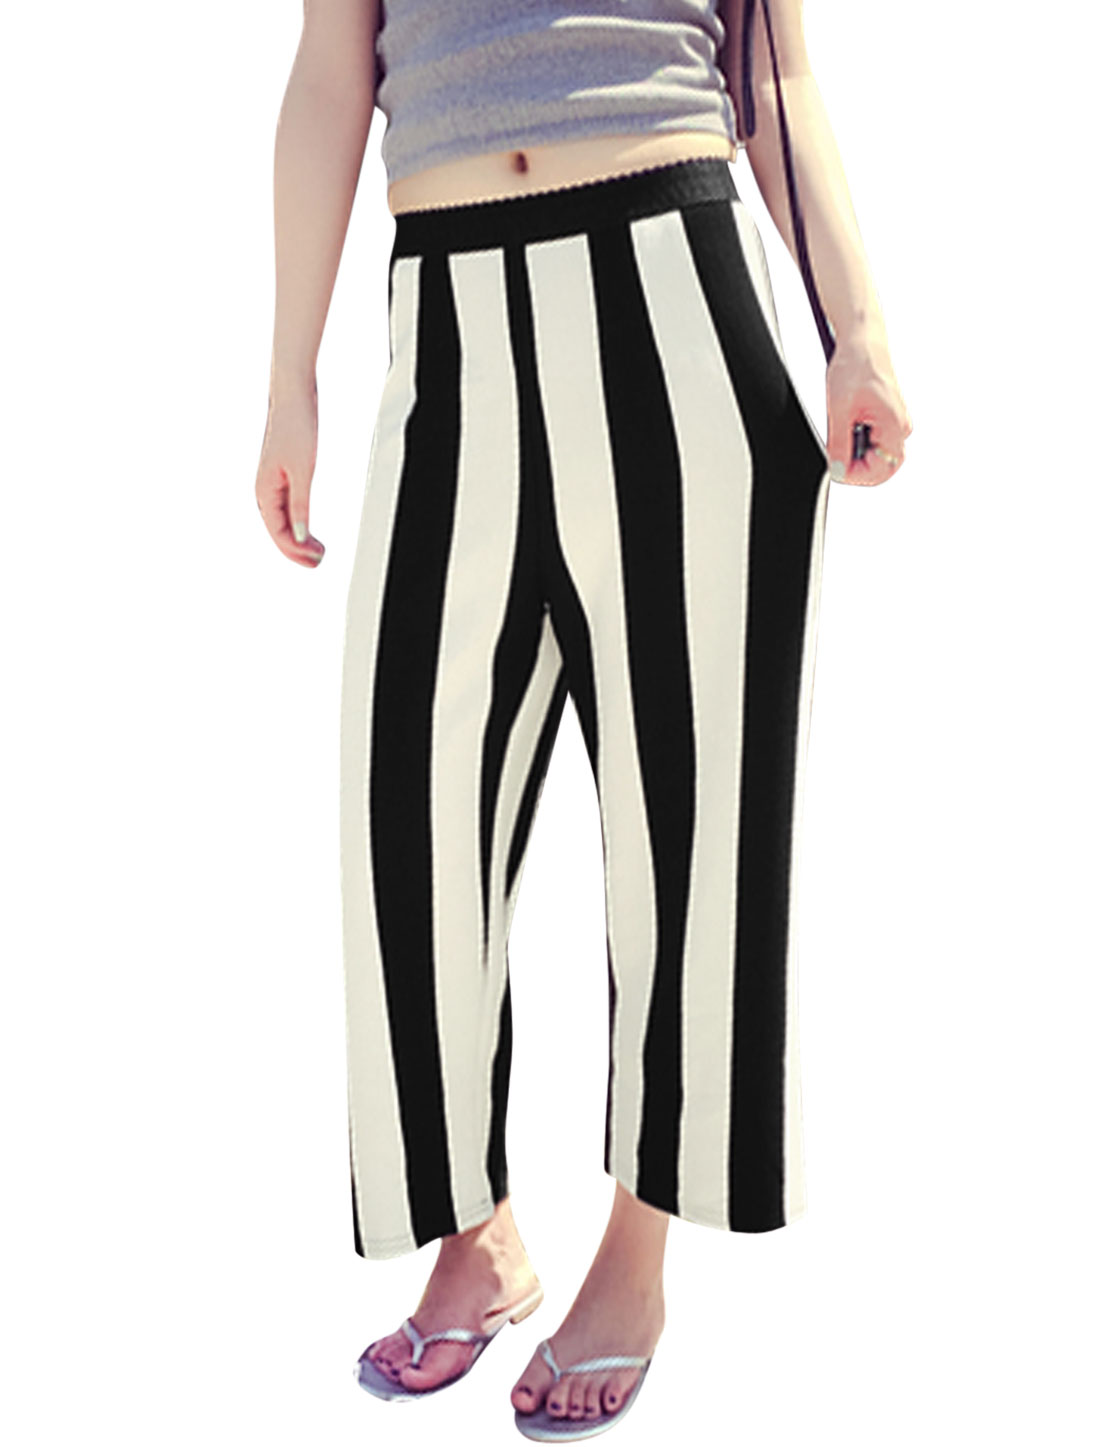 Woman Vertical Stripes Elastic Waistband Casual Cropped Pants Black Off White XS